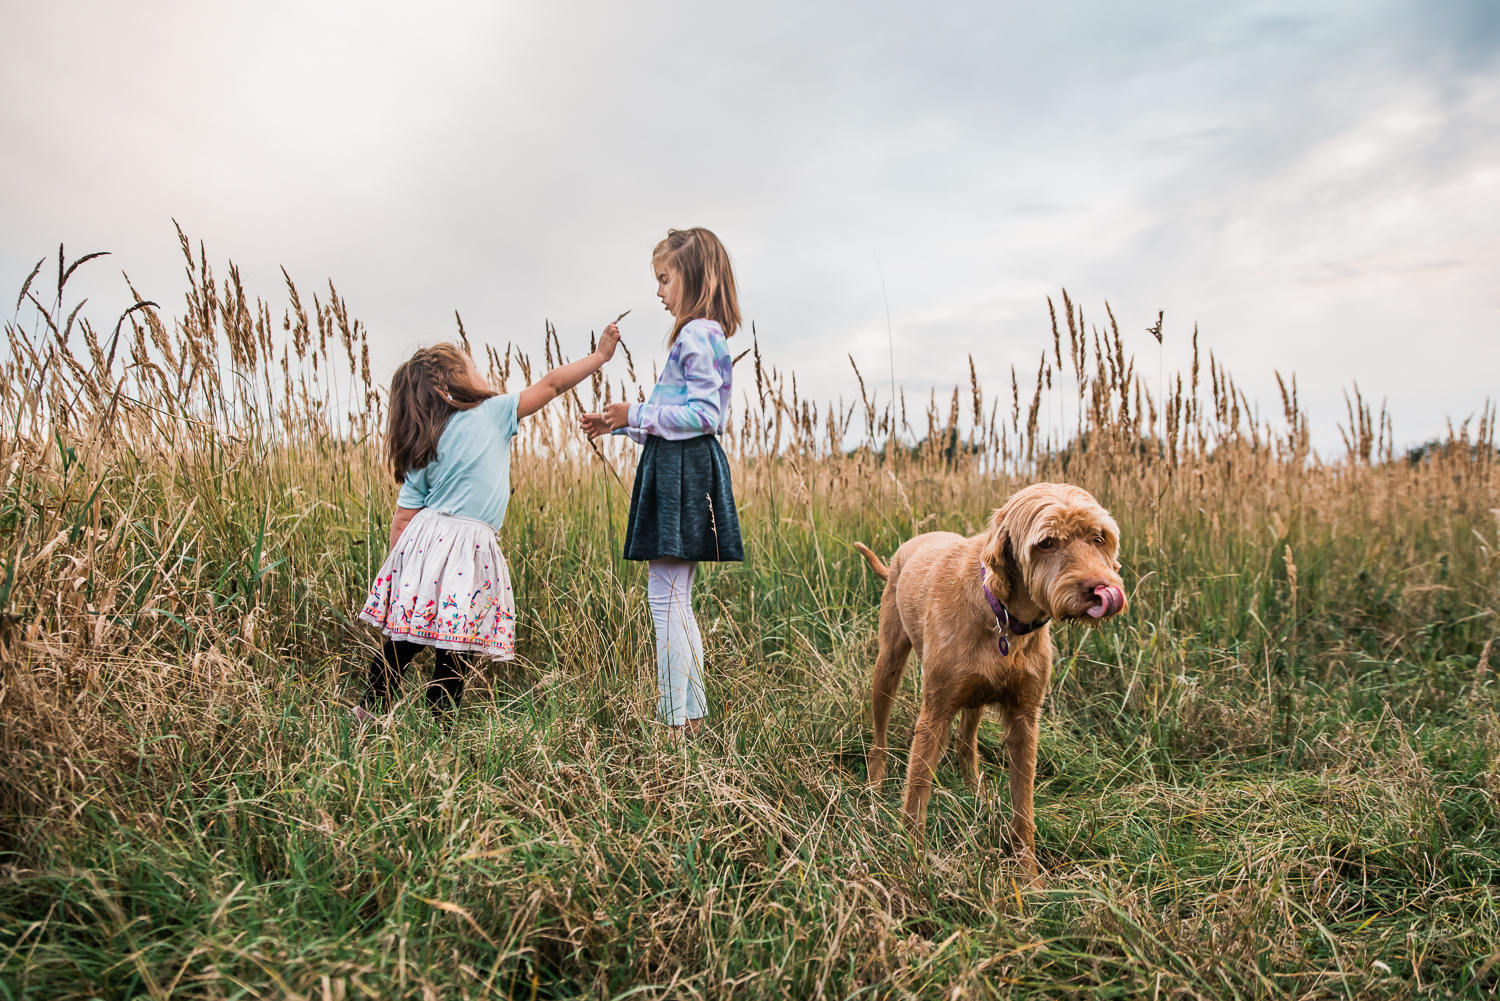 Children and their Hungarian Vizsla family pet in the grassland